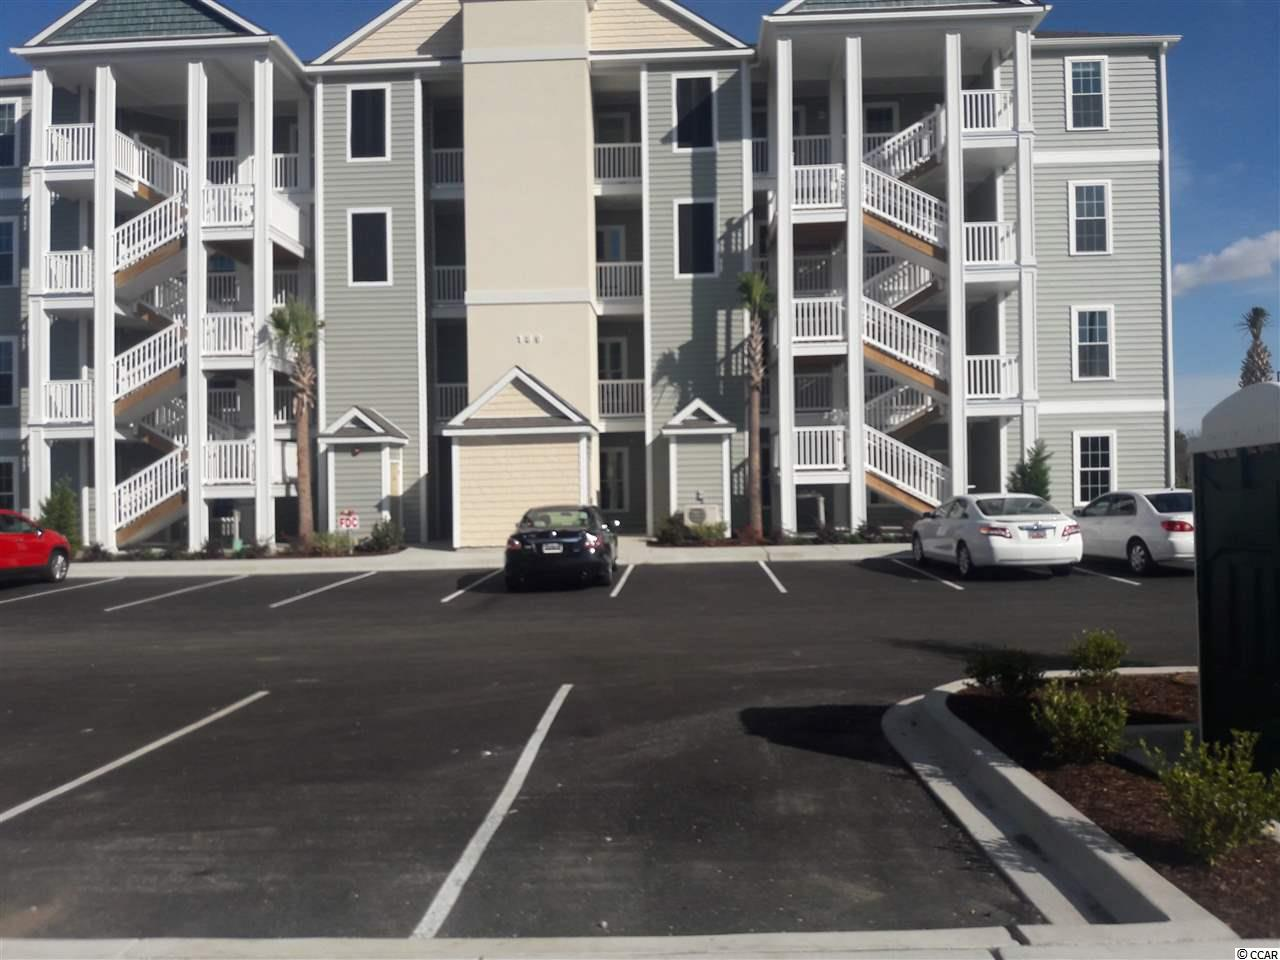 Located in one of the most successful condo developments in the Myrtle Beach area, this first floor end unit is a 3 bedroom 2 bathroom beautiful condo in the very popular Queens Harbour! Building has an over-sized ELEVATOR to all floors, outside storage, split bedroom floor plans with entry to the Master Suite from the Family Room, 9' smooth ceilings and a screen porch. The location is superb with shopping, dining and recreation steps away. The amenity package includes a resort style swimming pool with club house and conveniently located picnic areas with barbecues just outside your backdoor.